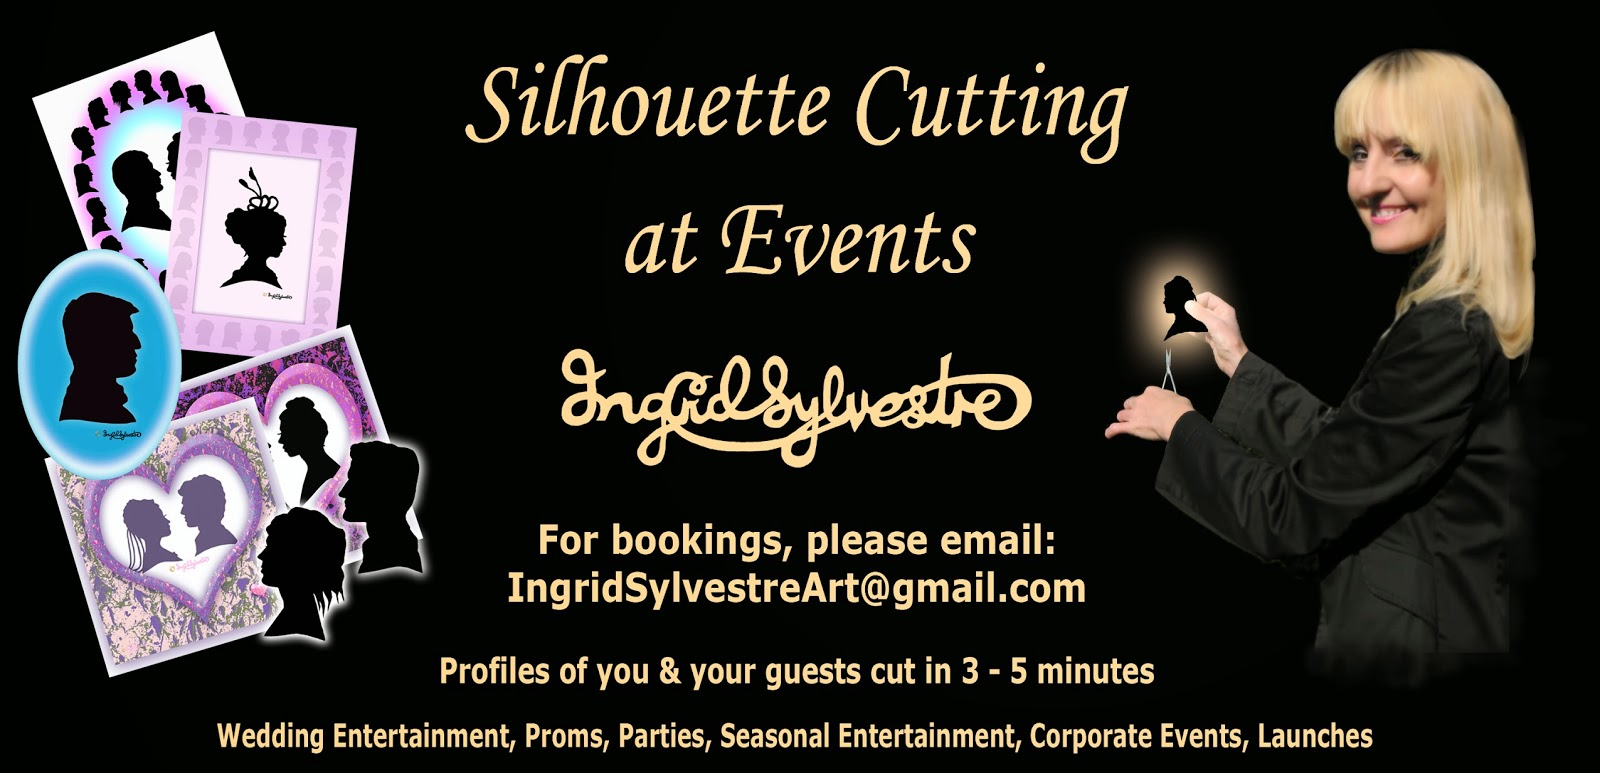 Silhouette Cutting at Events North East Wedding Entertainment Durham Christmas EntertainmentNewcastle upon Tyne Northumberland Wedding Entertainment Sunderland Christmas Party Entertainment Middlesbrough Teesside Corporate Events Entertainment Yorkshire Ingrid Sylvestre Silhouette Artist UK